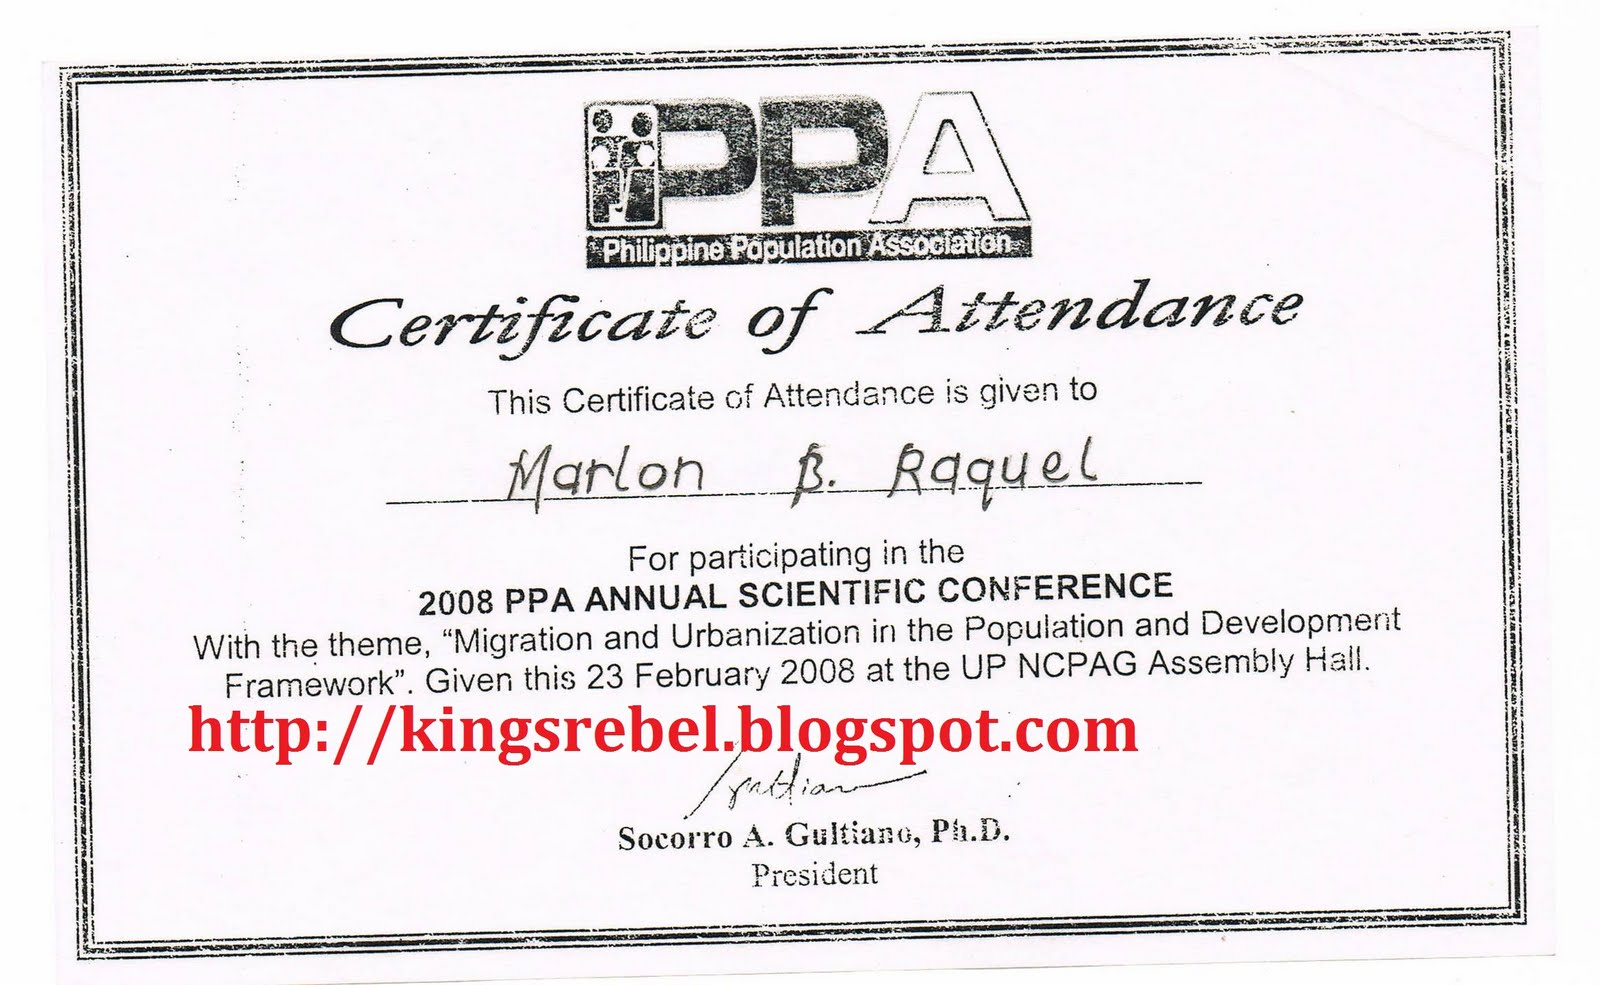 Conference Certificate Of Attendance Template